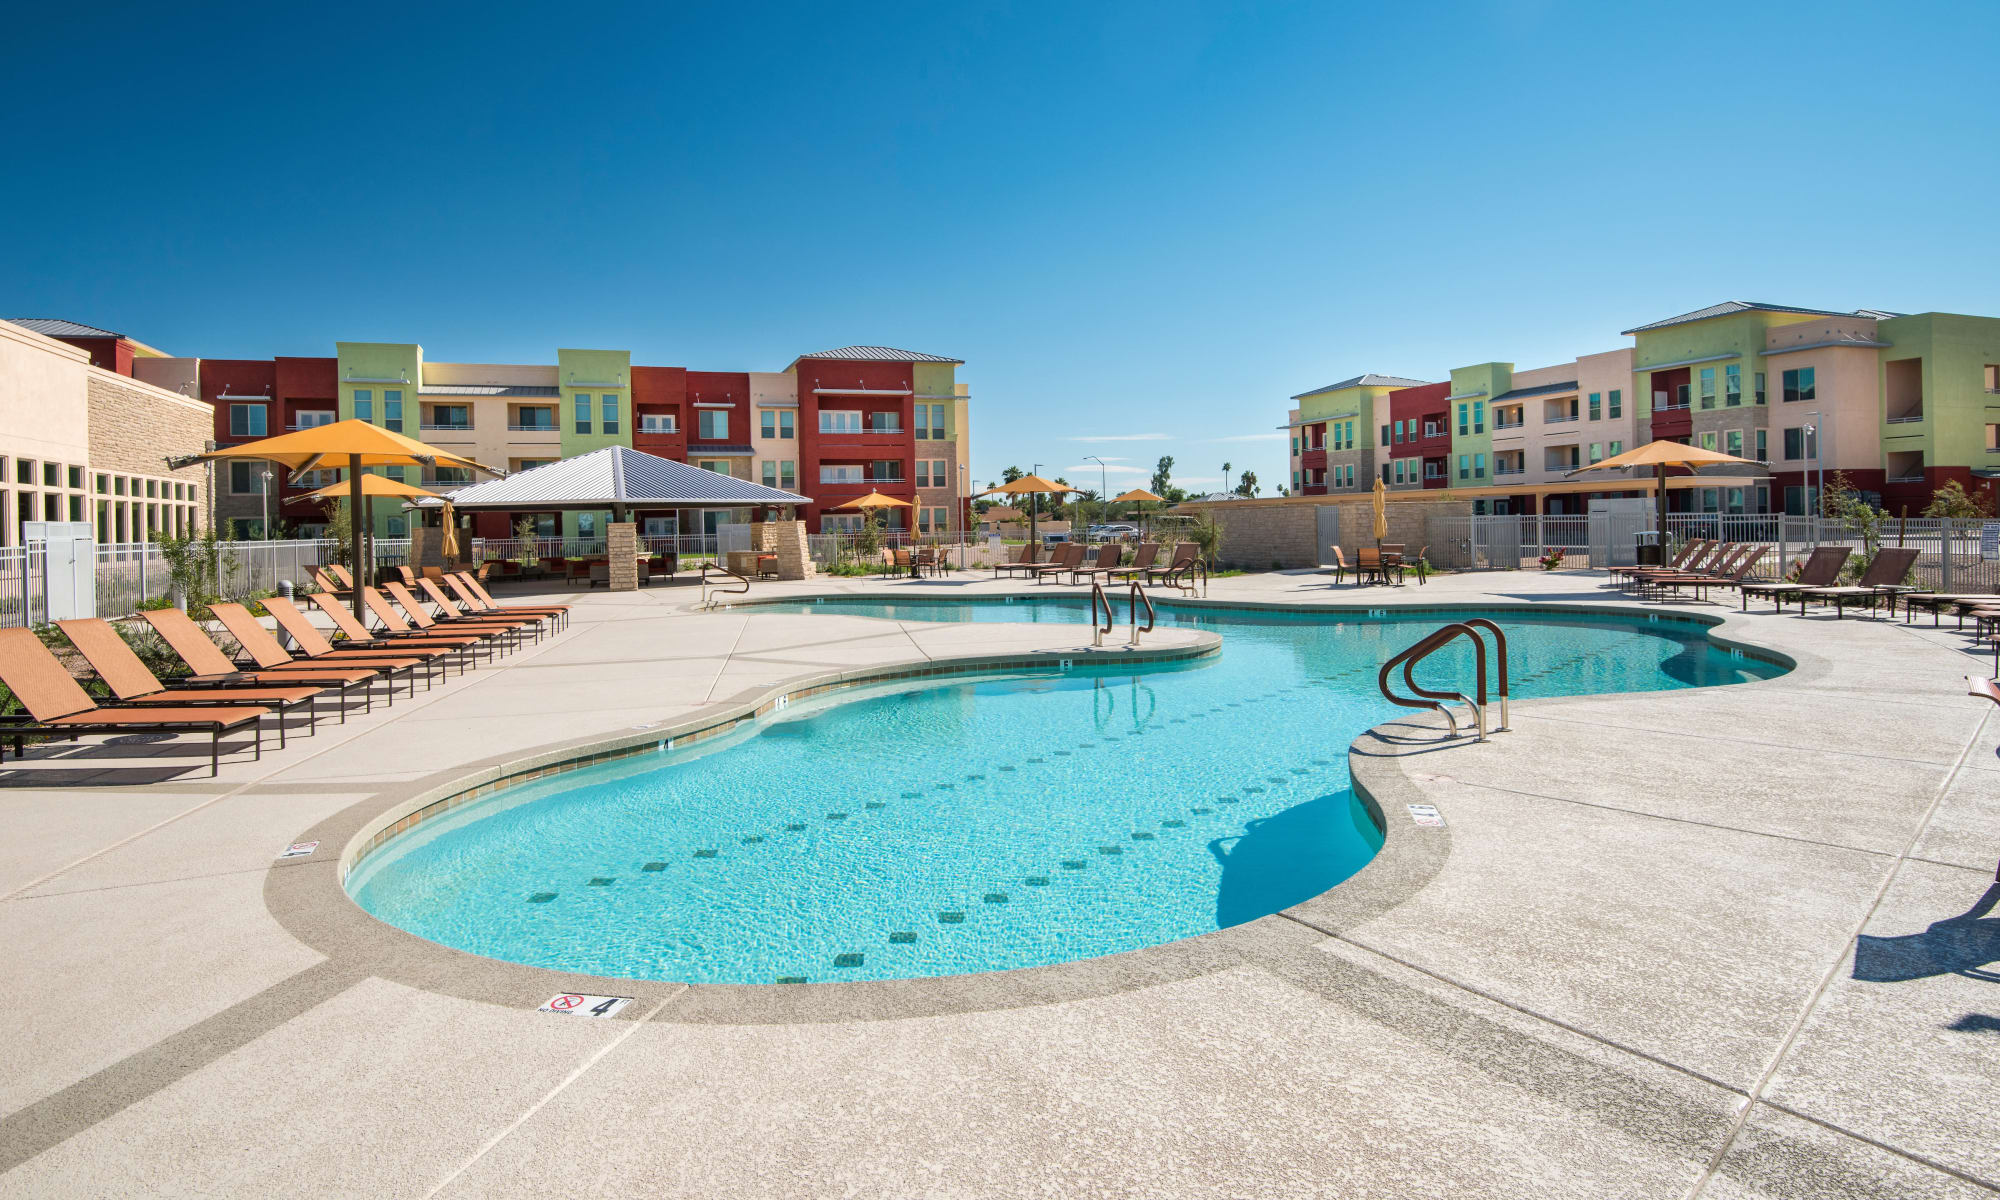 Apartments at Southern Avenue Villas in Mesa, Arizona